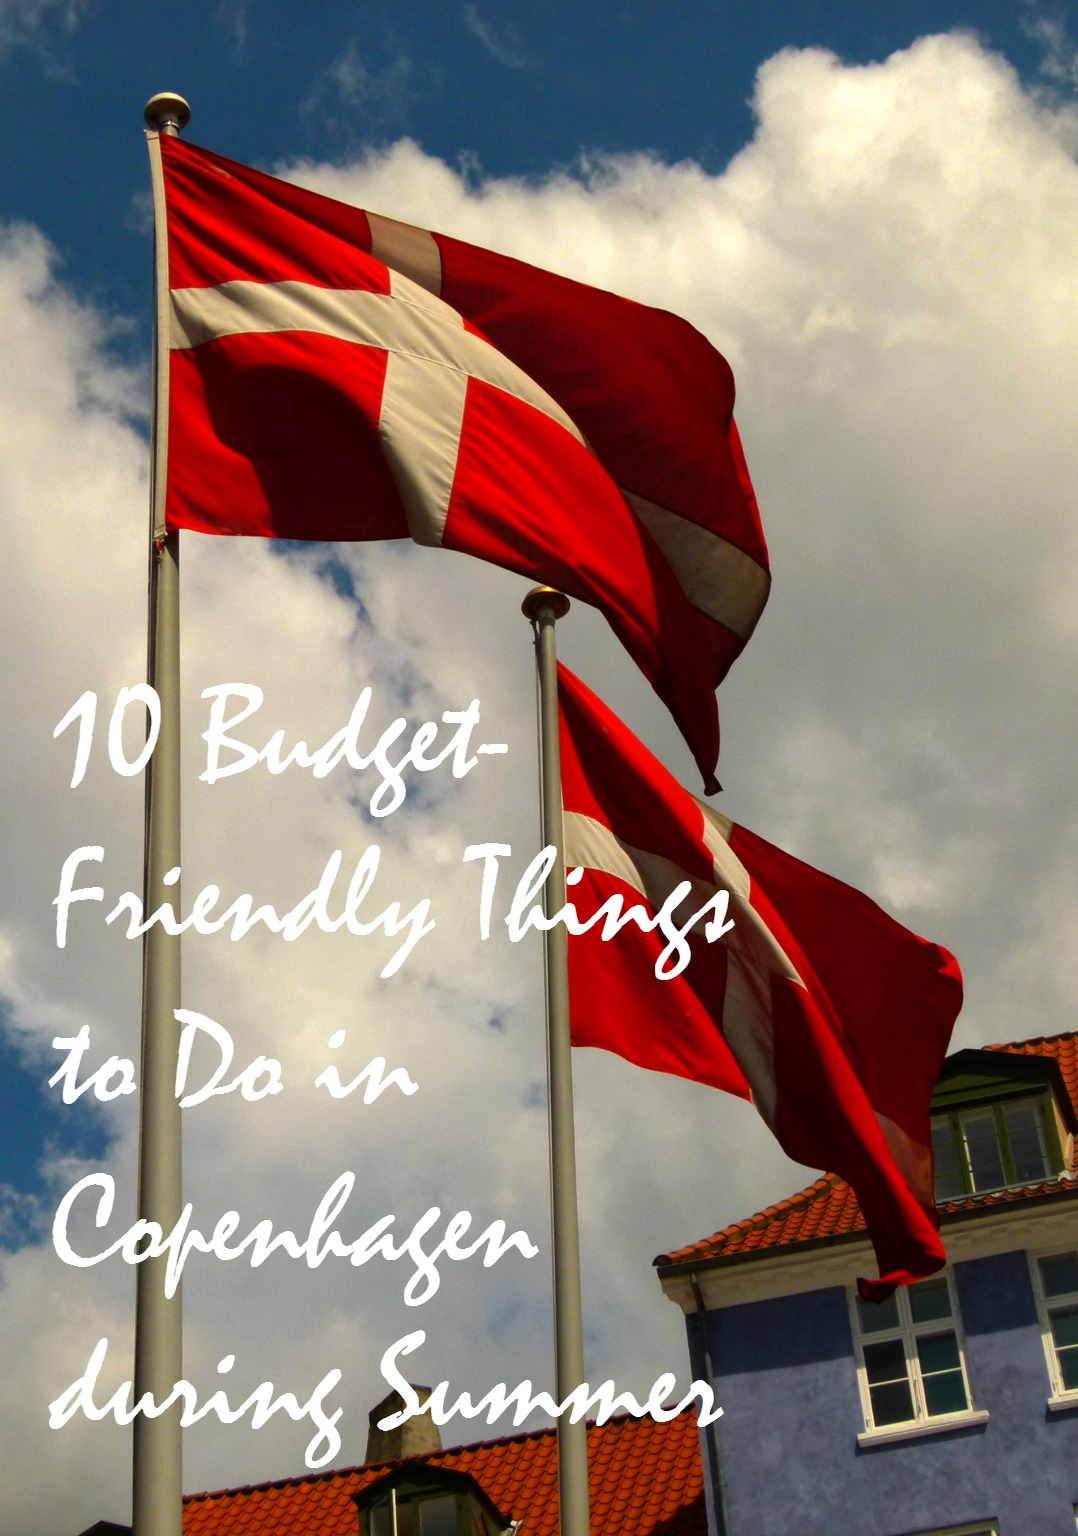 Visiting Copenhagen during summertime and wonder what to do? Here are 10 Things that won't strain your wallet!